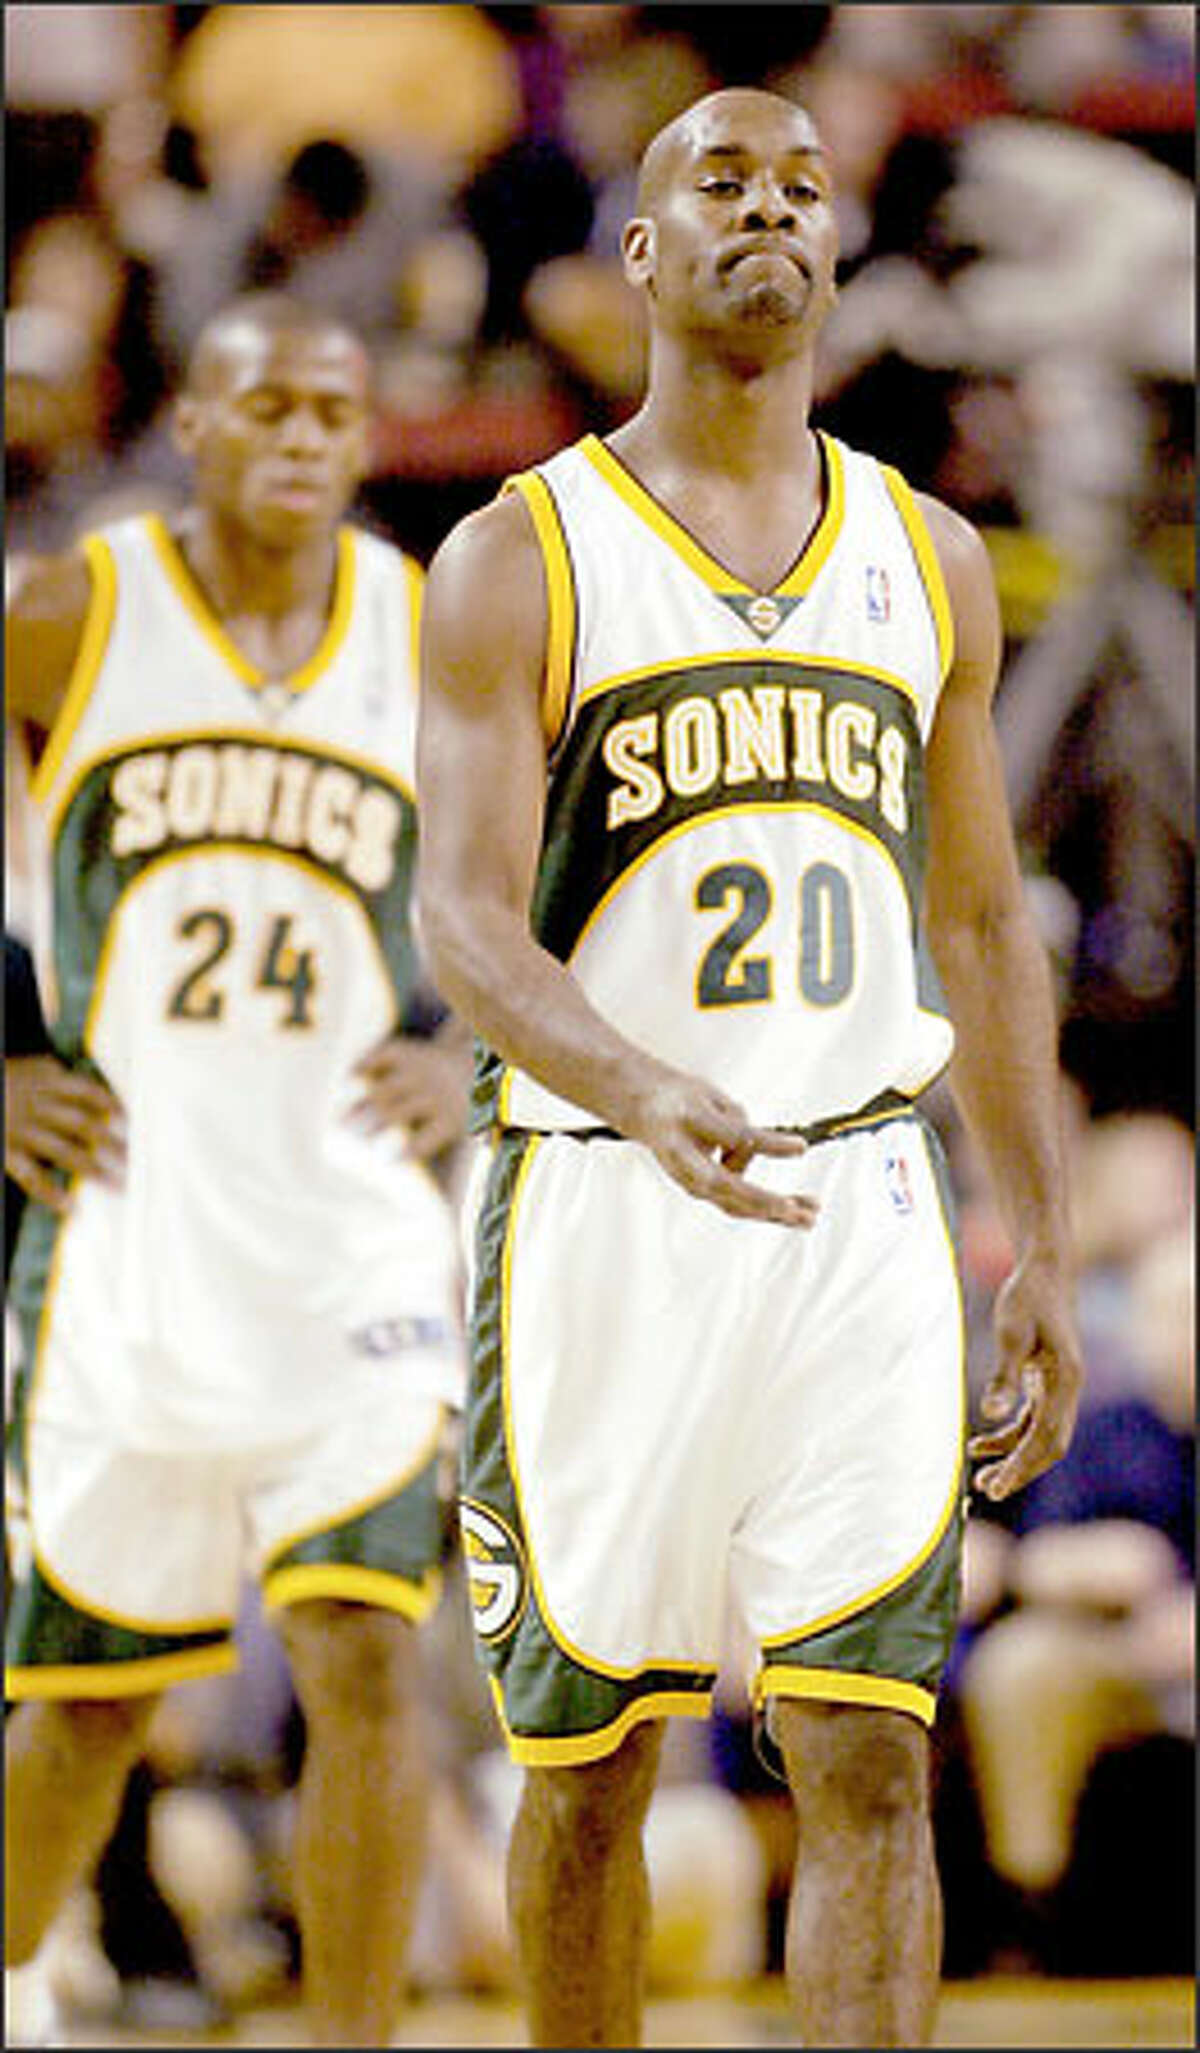 Sonics Gary Payton walks off the court with a frown on his face after a lackluster performance against the Suns.